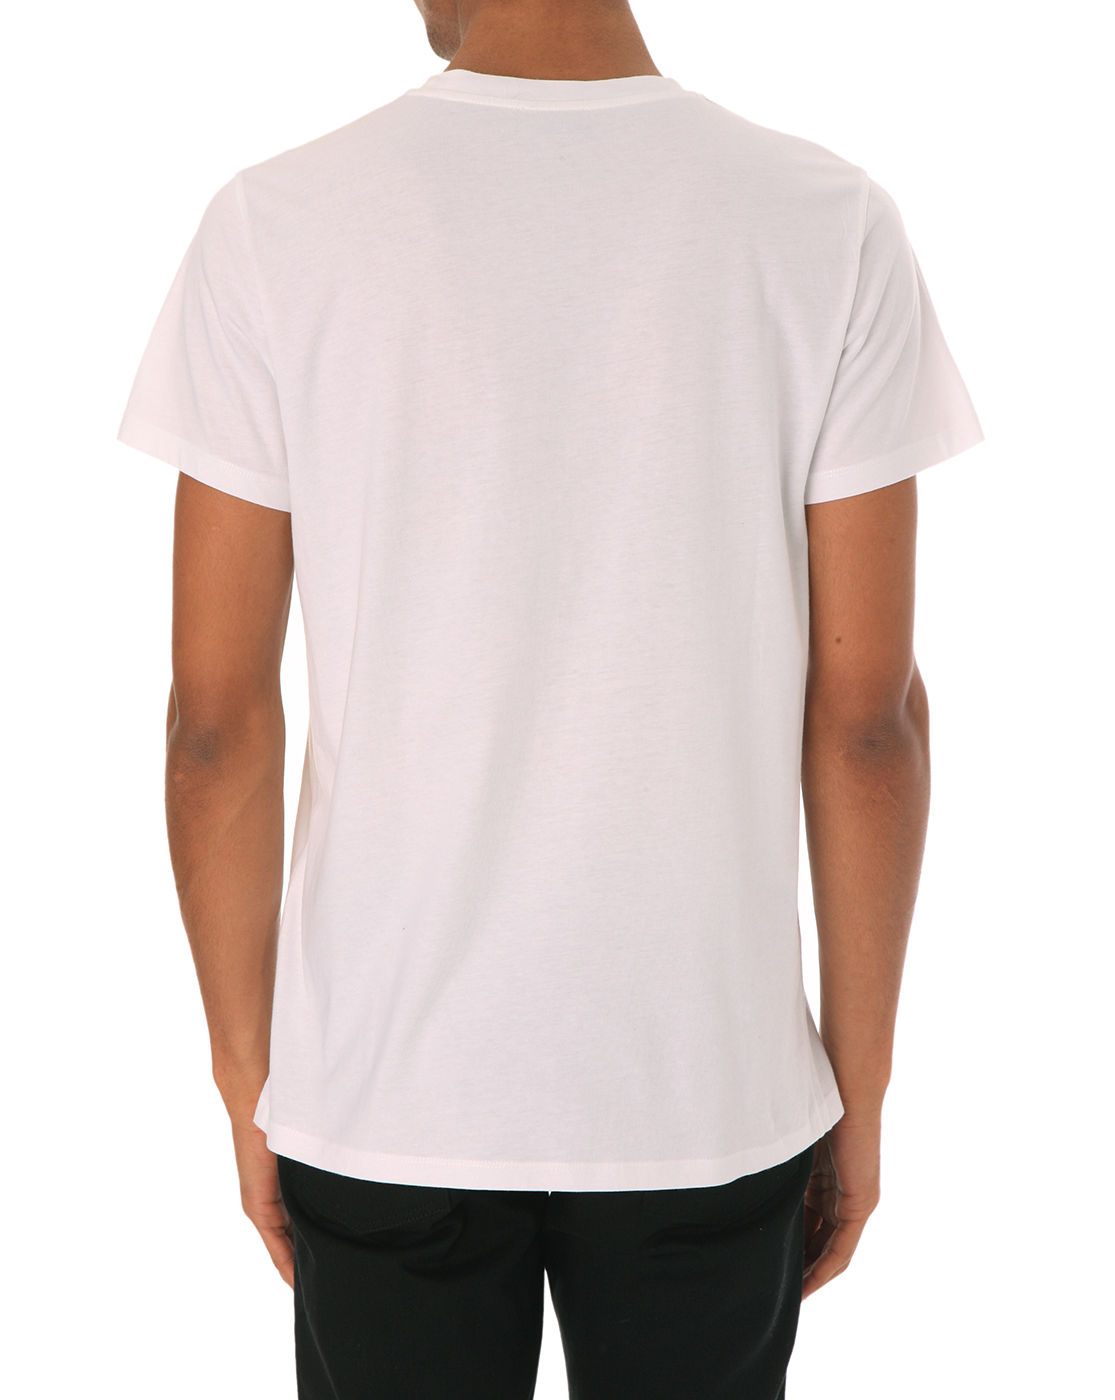 A p c beach white printed t shirt in white for men lyst for Apc white t shirt